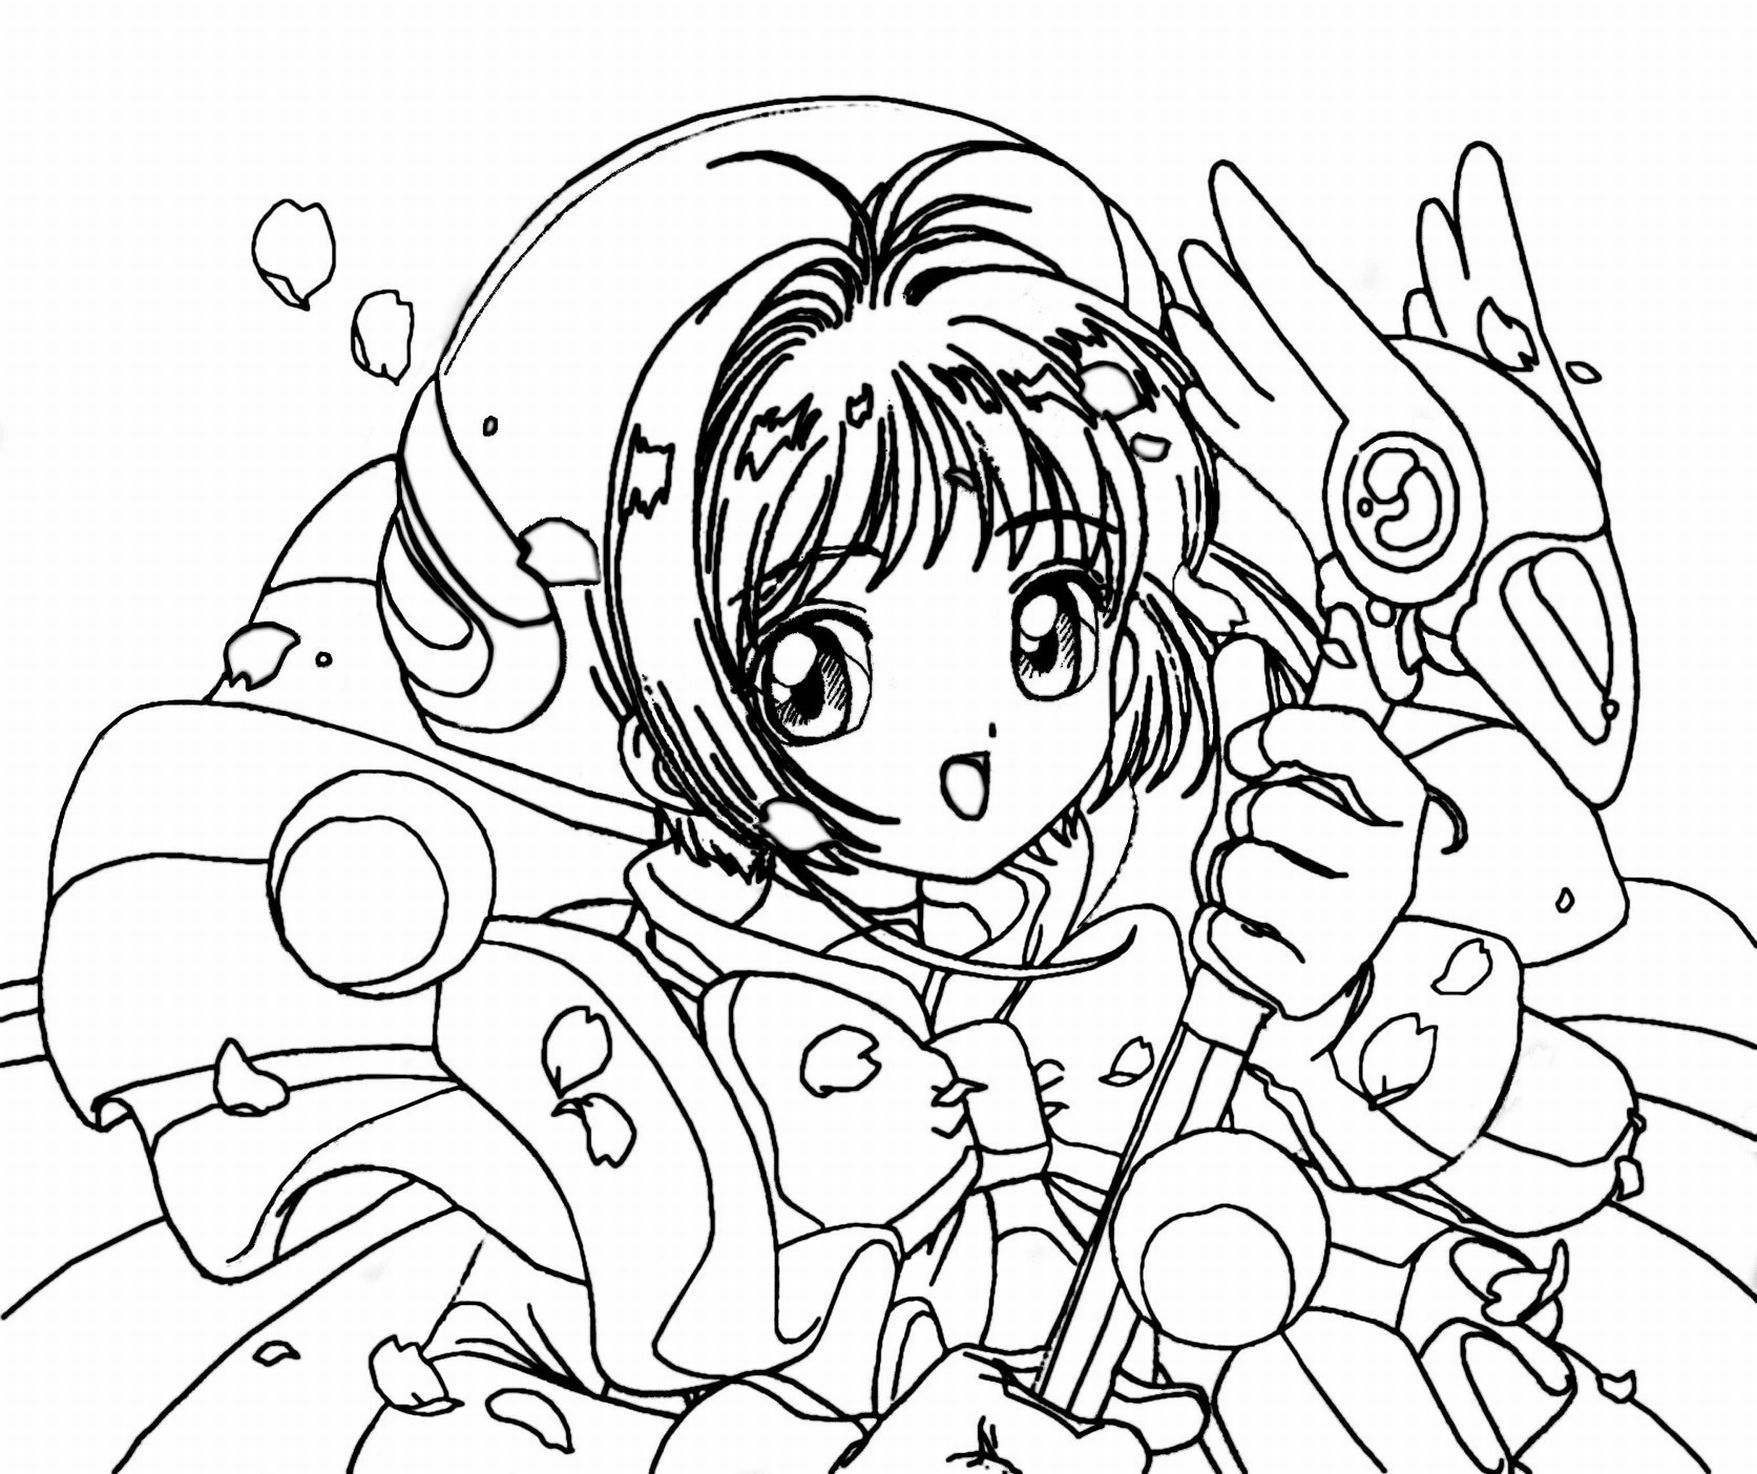 Anime To Print - Coloring Pages for Kids and for Adults